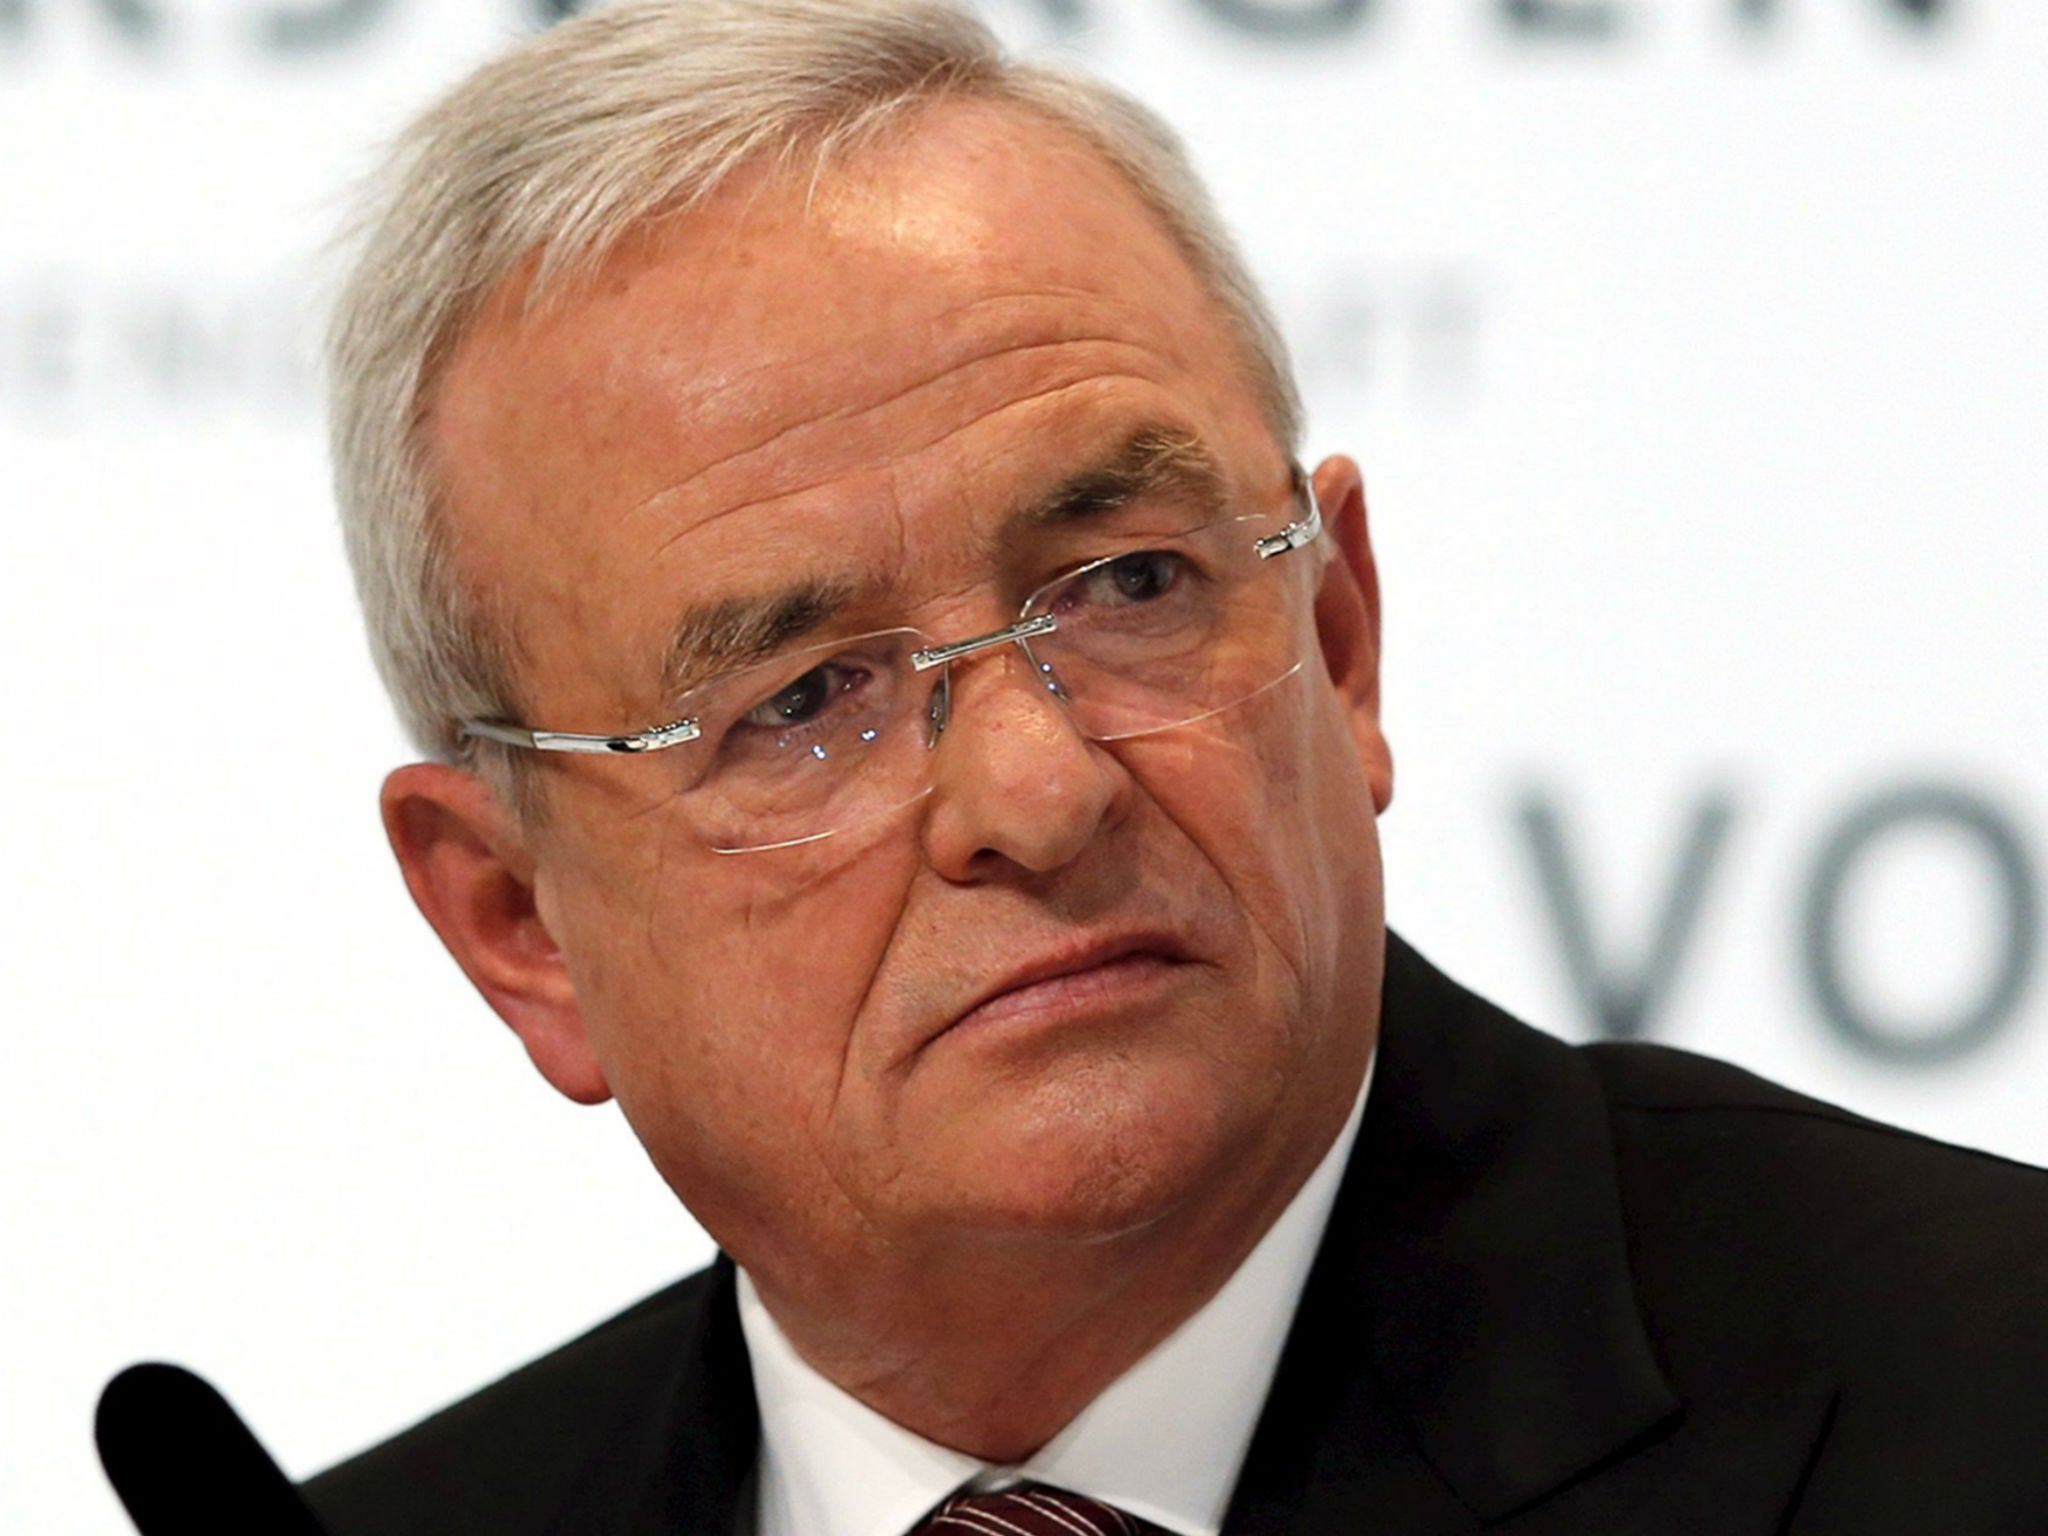 Volkswagen diesel emissions scandal: the toxic legacy